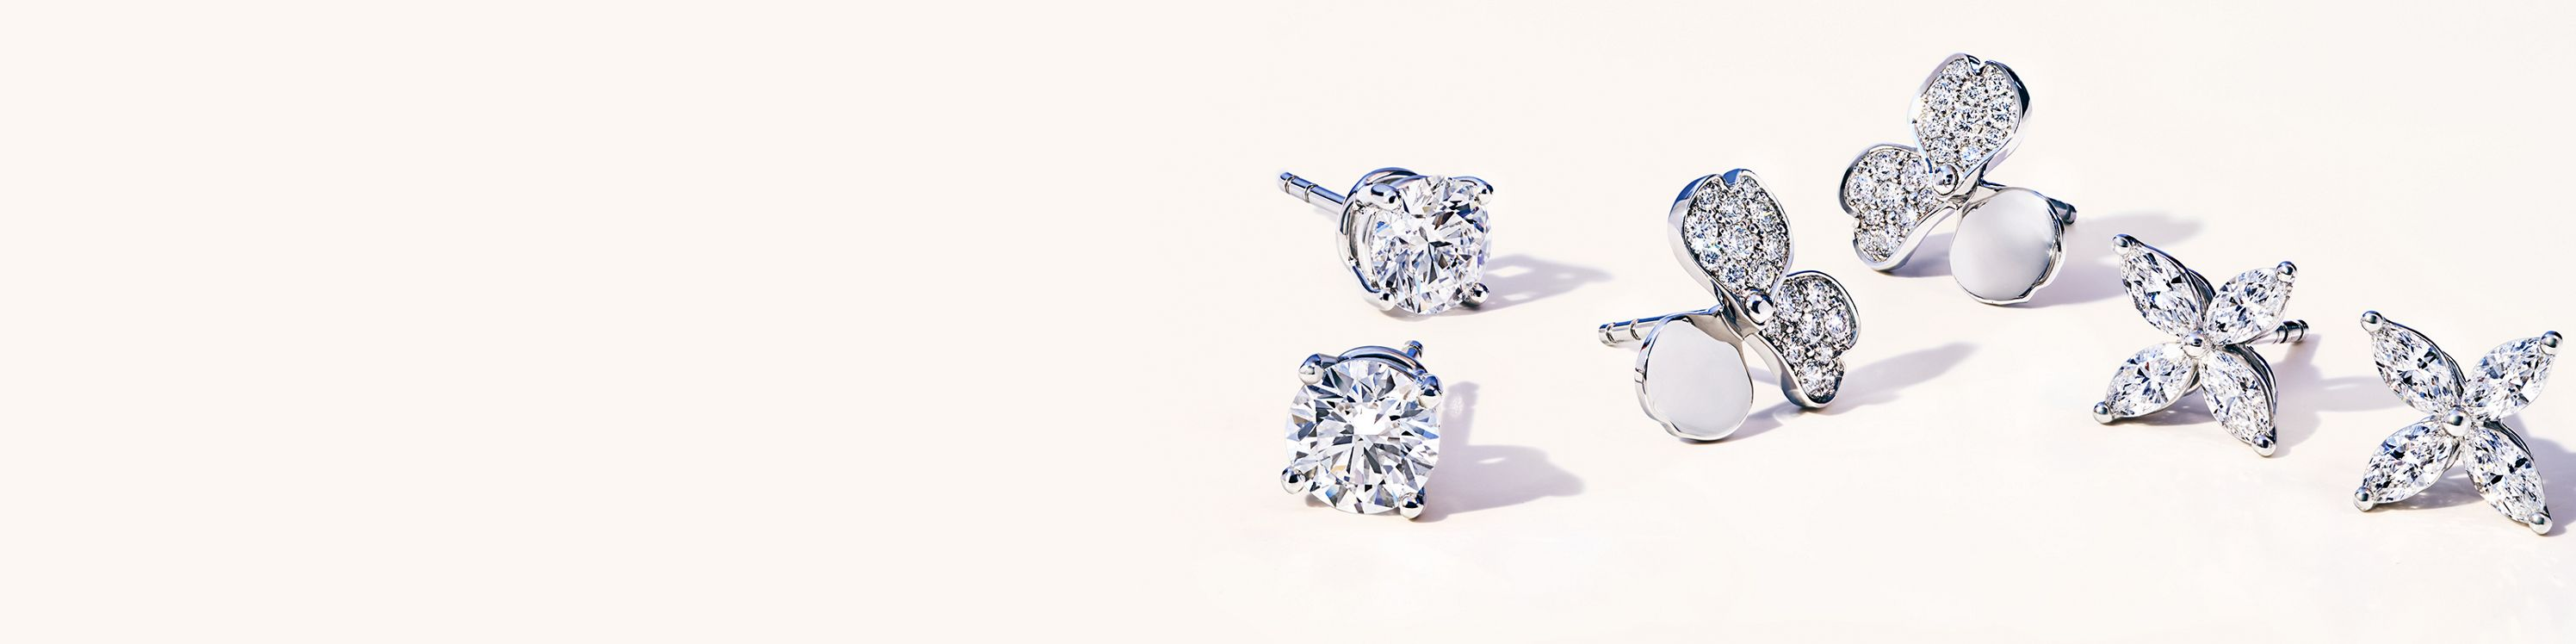 10eed4fbd Earrings for Women: Studs, Hoops & More | Tiffany & Co.